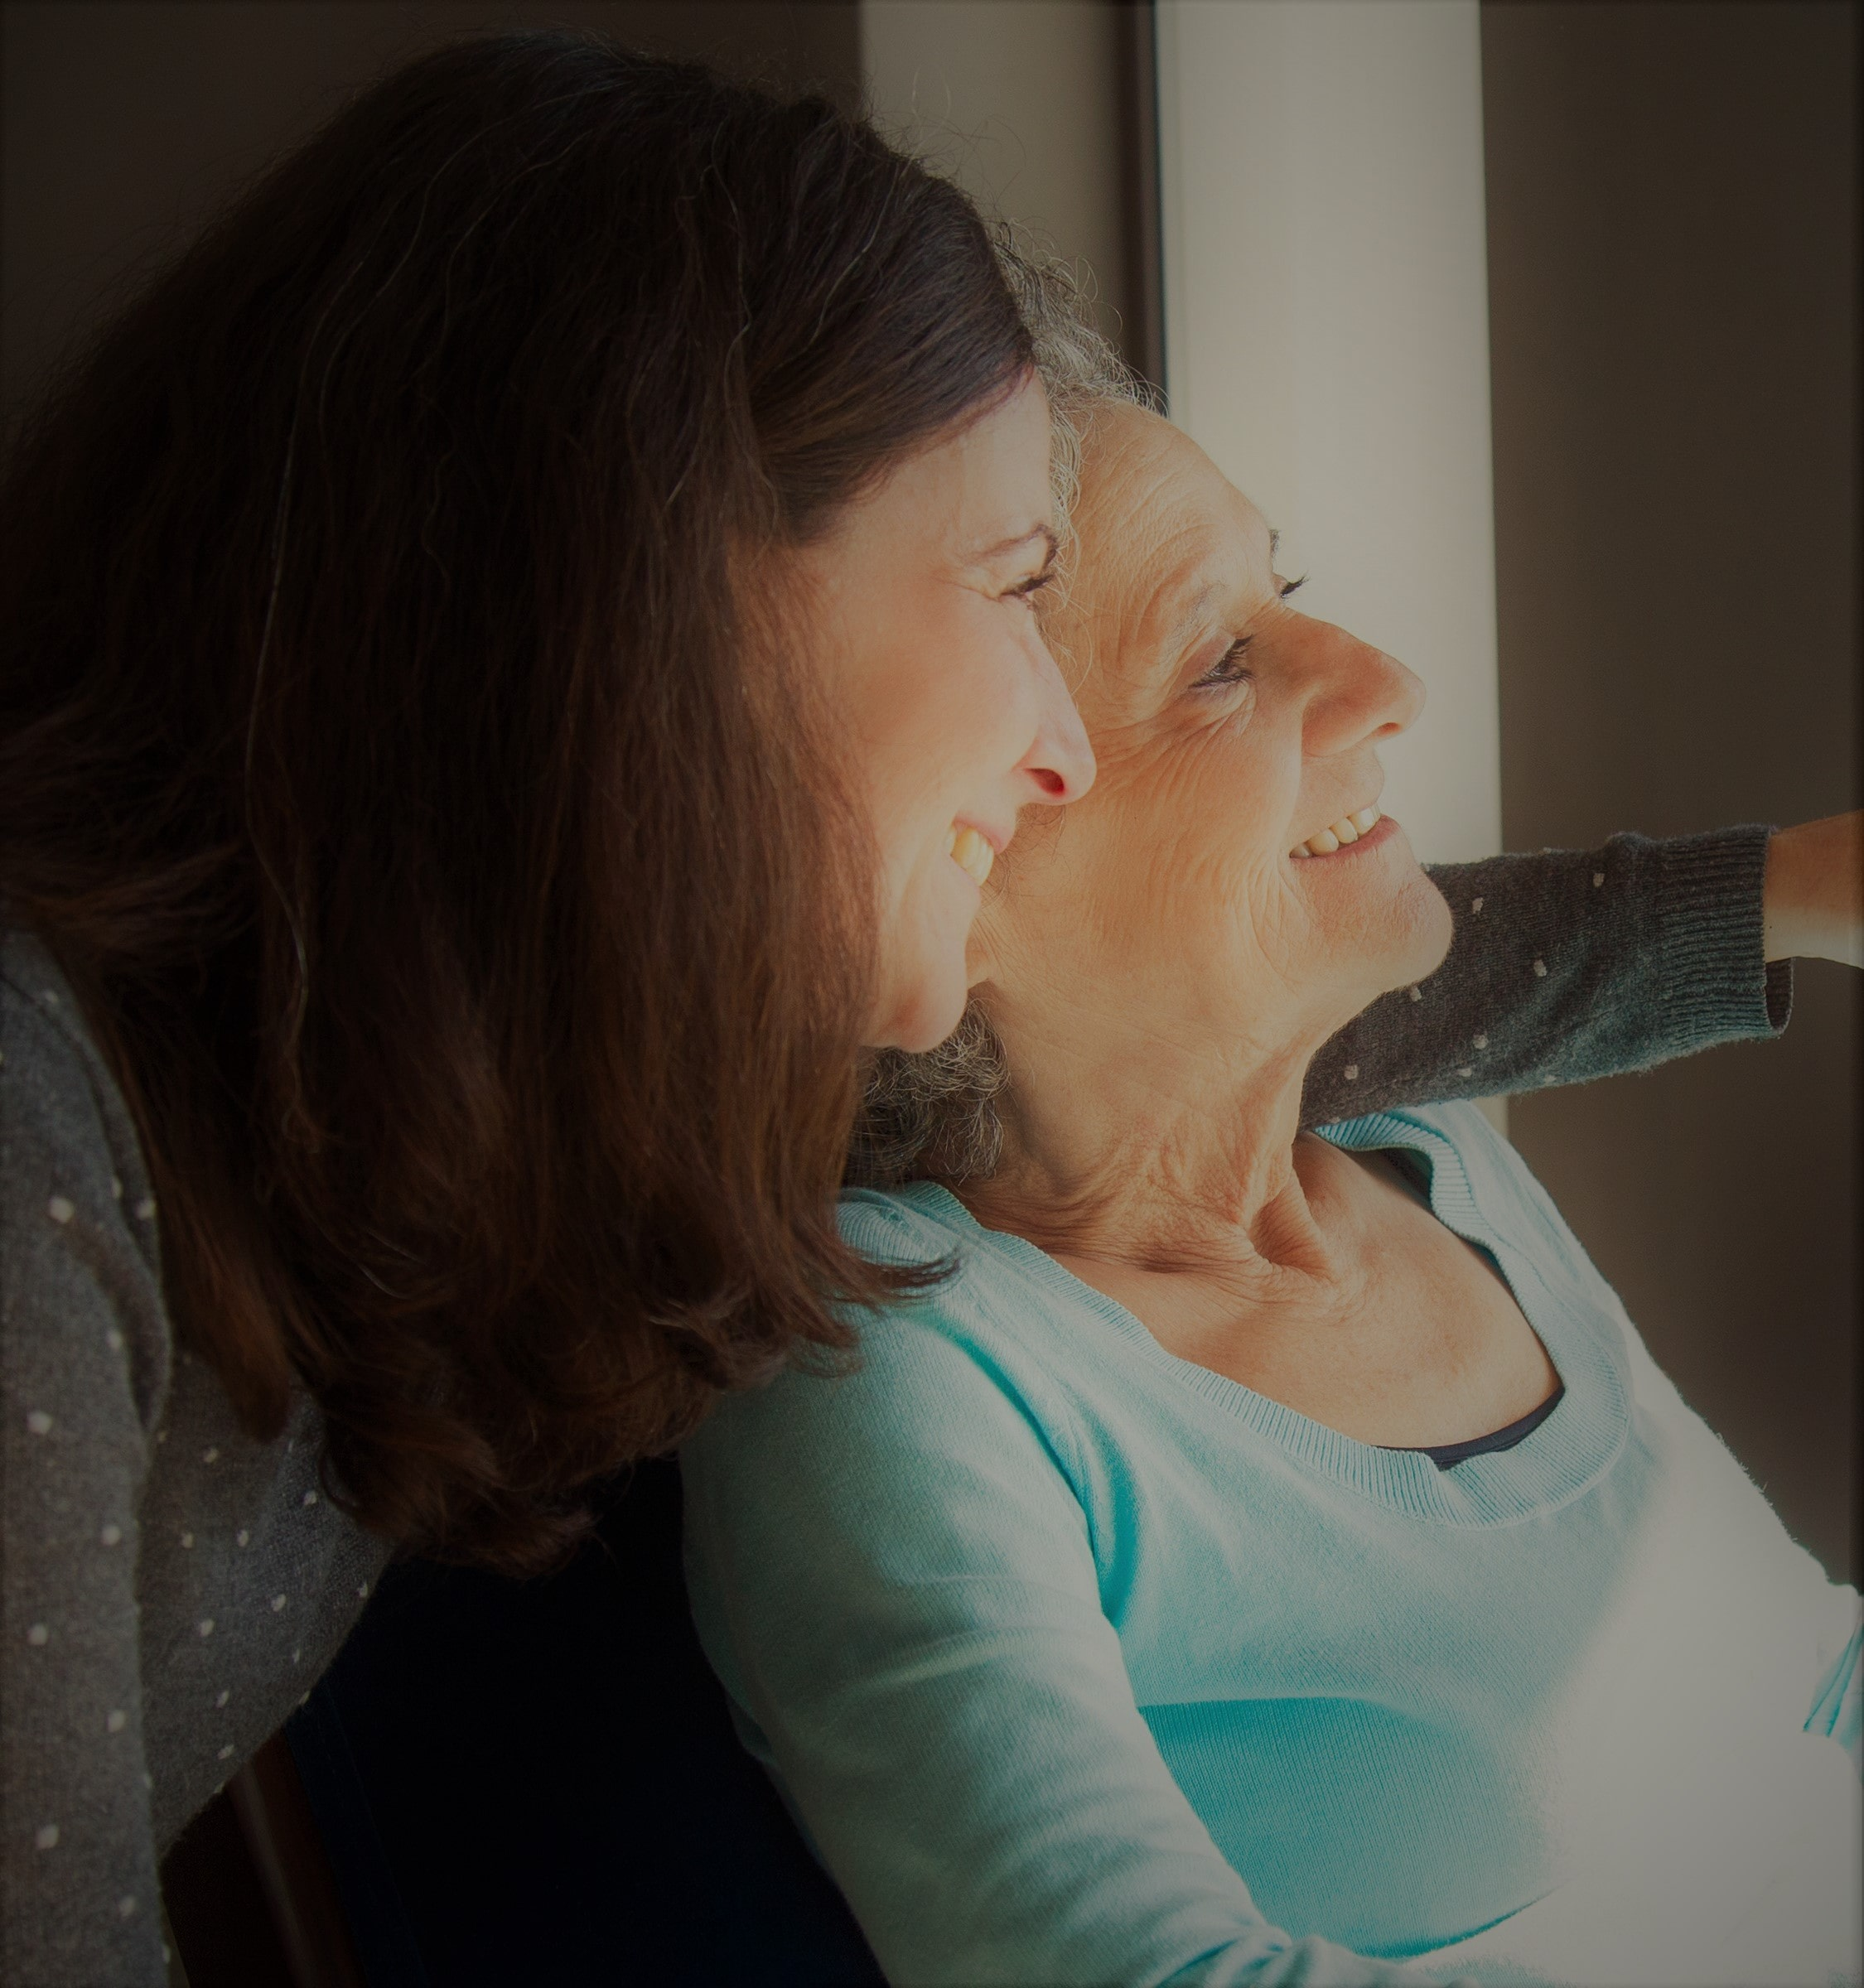 positive-mother-and-daughter-enjoying-dramatic-view-min.jpg